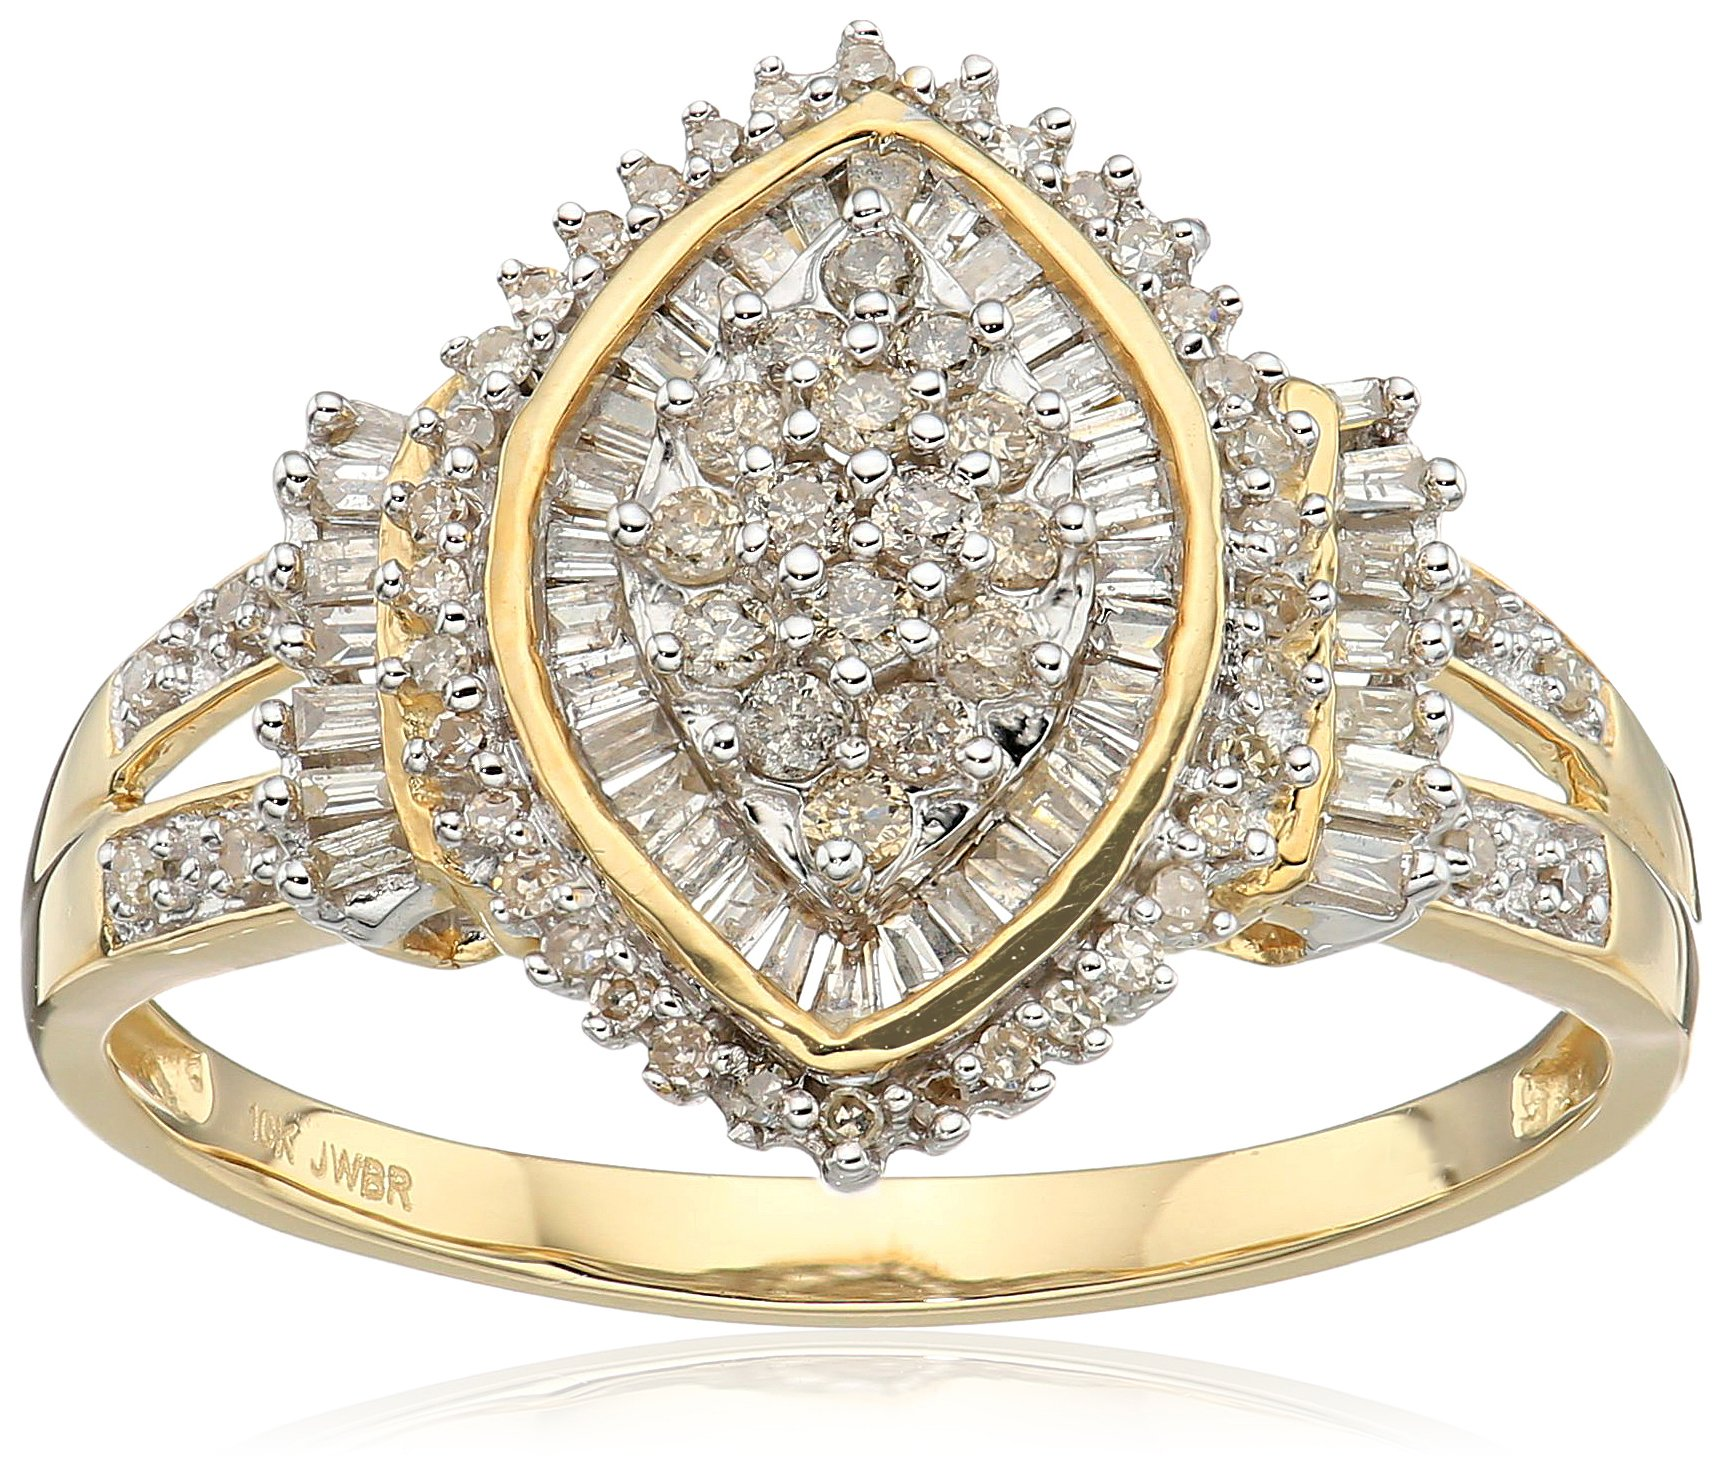 10k Yellow Gold Diamond Cocktail Cluster Ring (1/2 cttw), Size 8